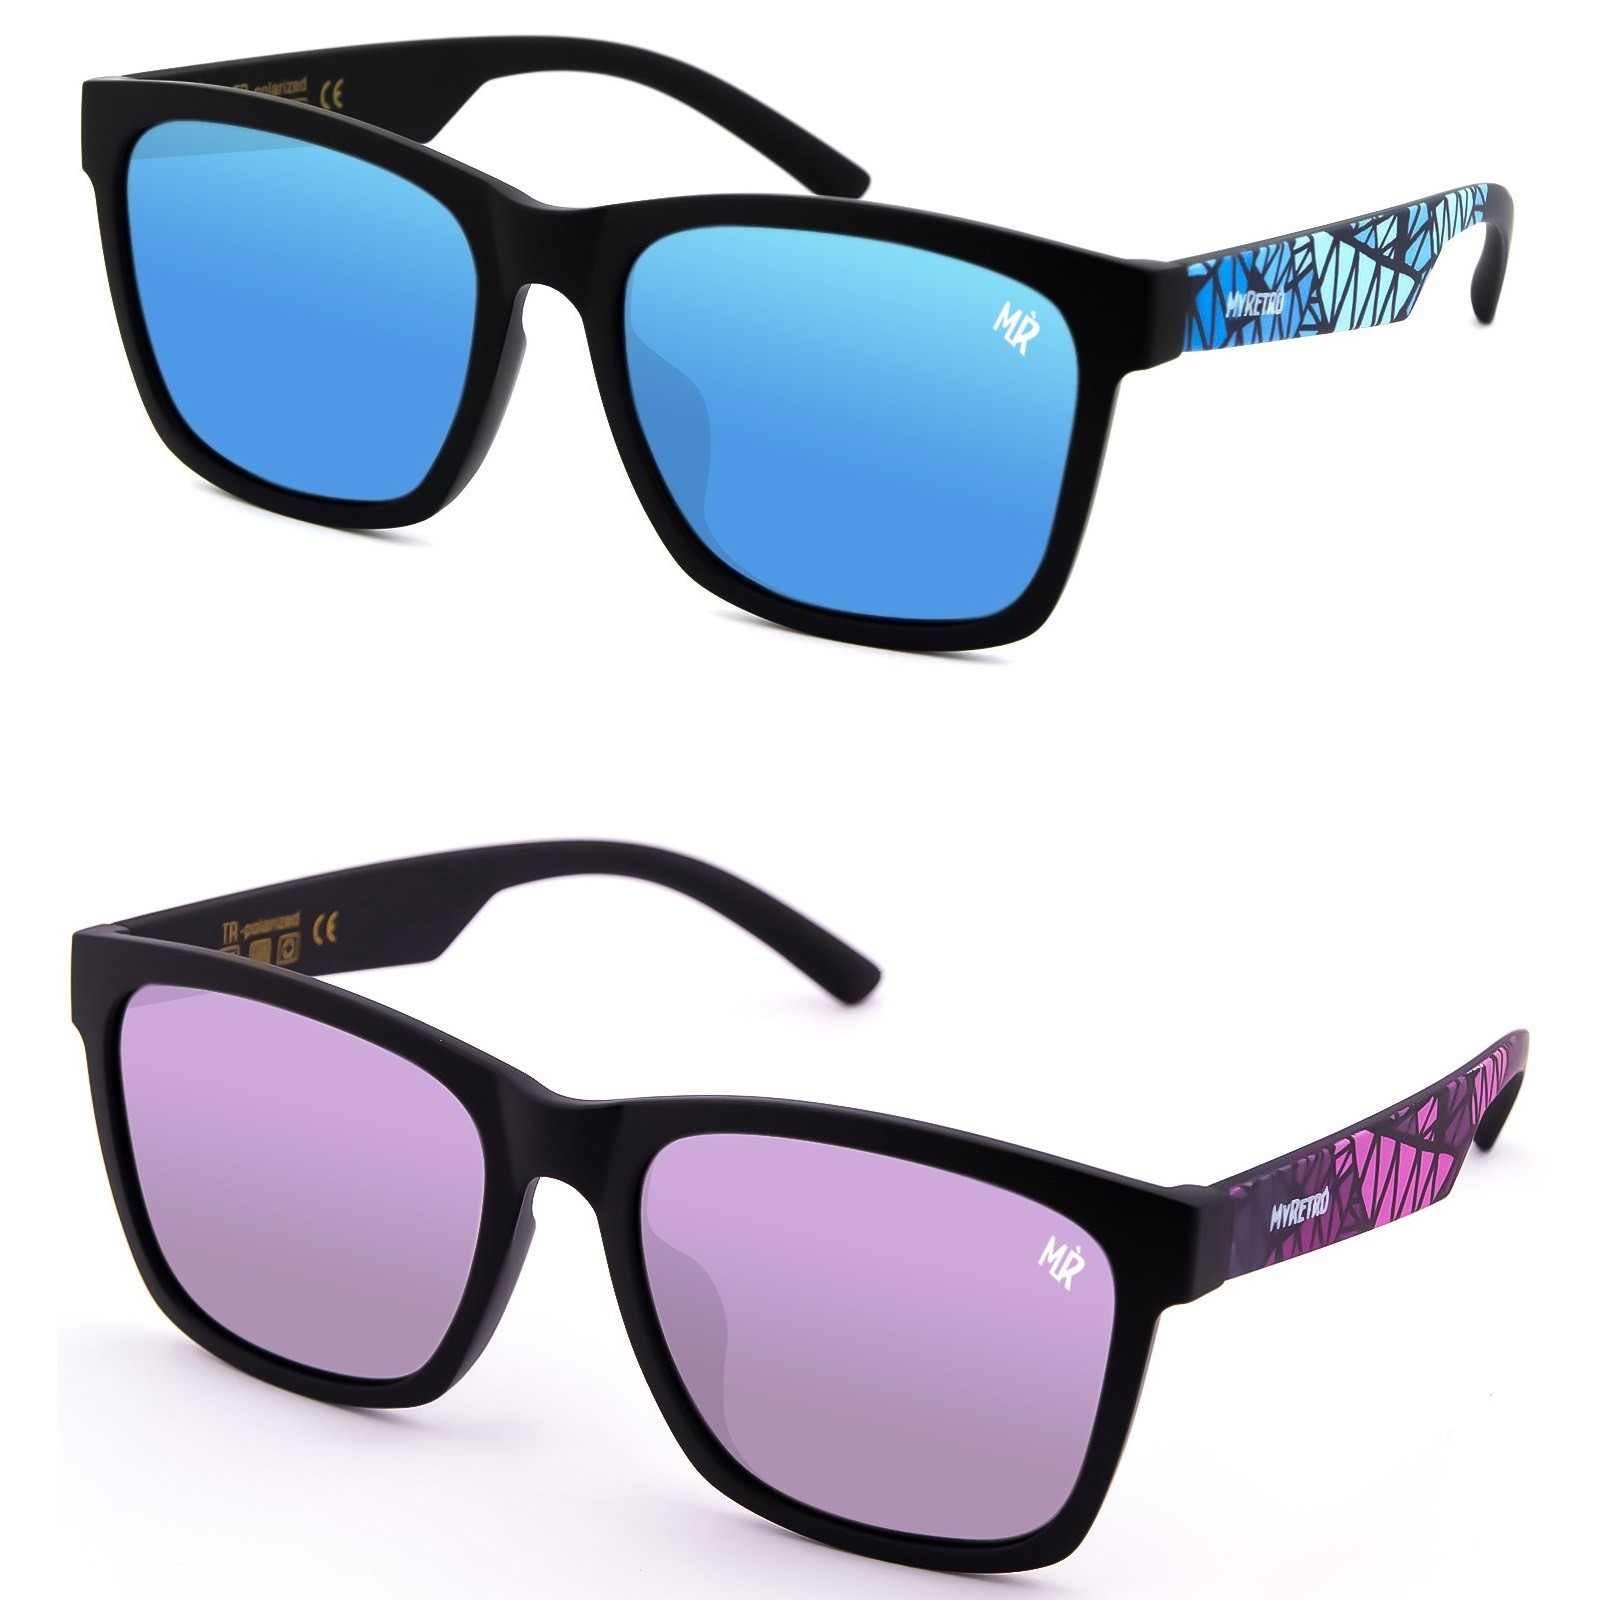 Sonnenbrille Polarisiert KISS® - MyRetro PREMIUM mod. QUEEN'S - mann frau VINTAGE Abstract Art LIMITED